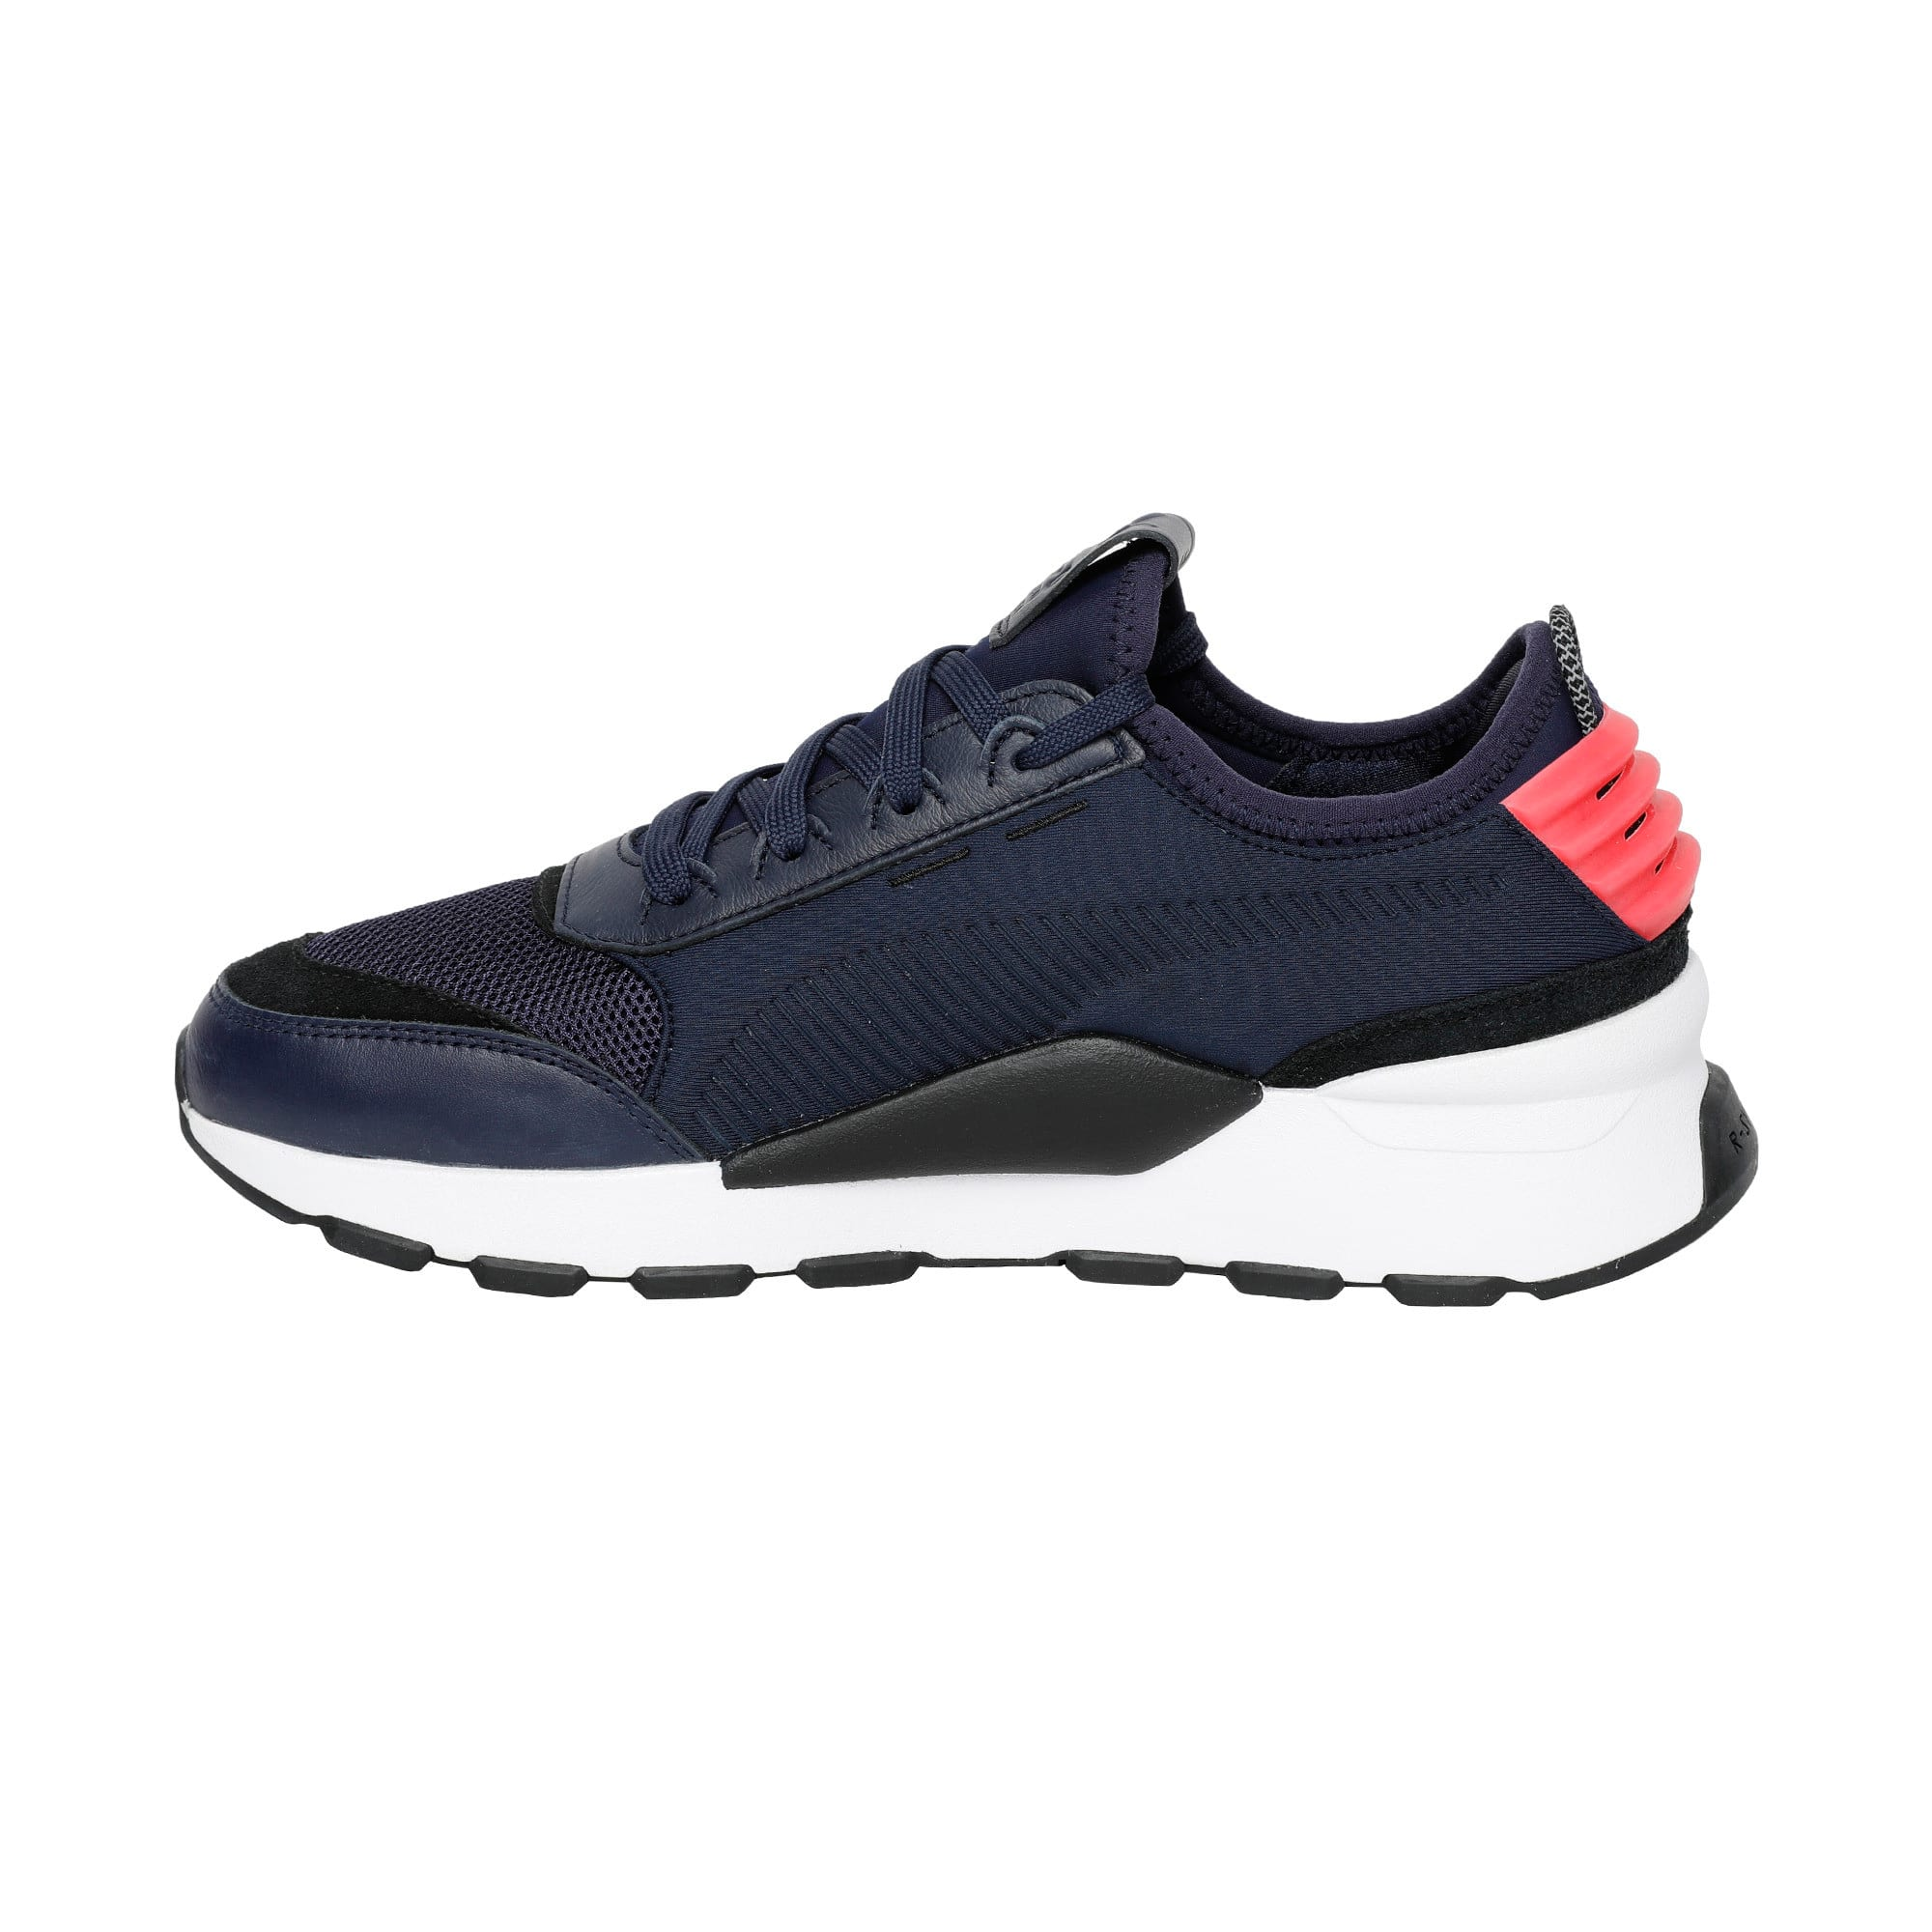 Thumbnail 1 of RS-0 Core Trainers, Peacoat-Puma Black, medium-IND